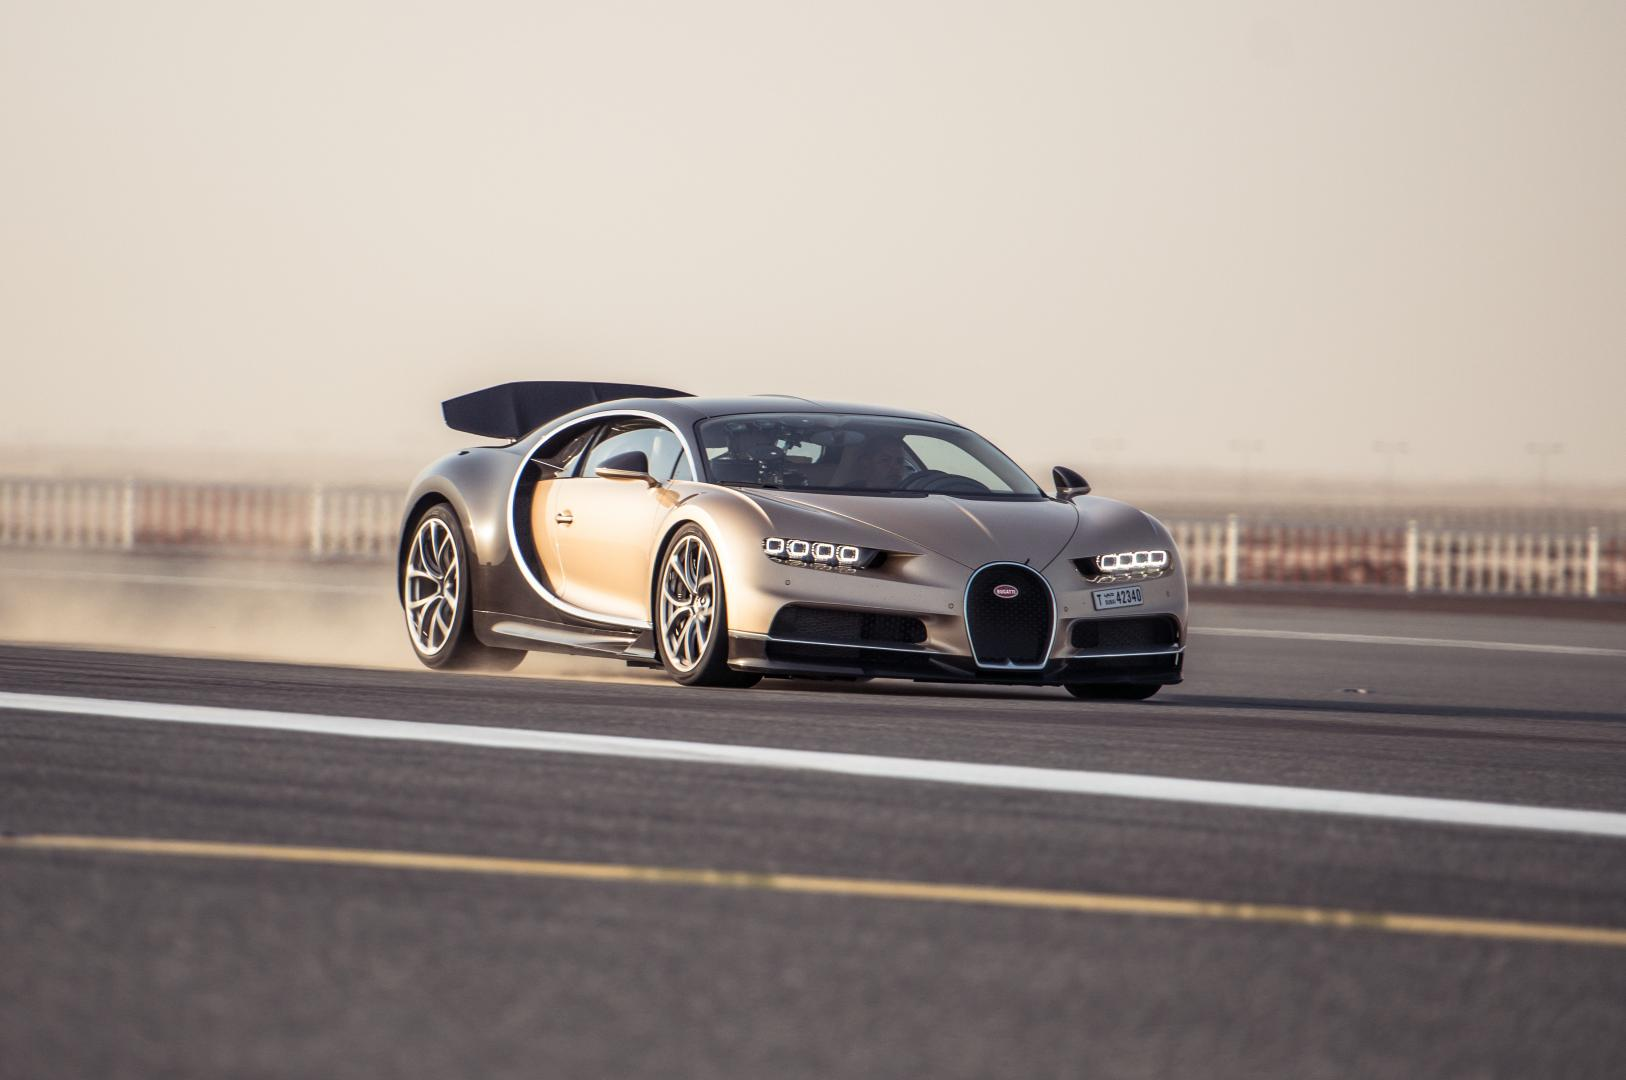 bugatti veyron vs bugatti chiron de verschillen topgear. Black Bedroom Furniture Sets. Home Design Ideas